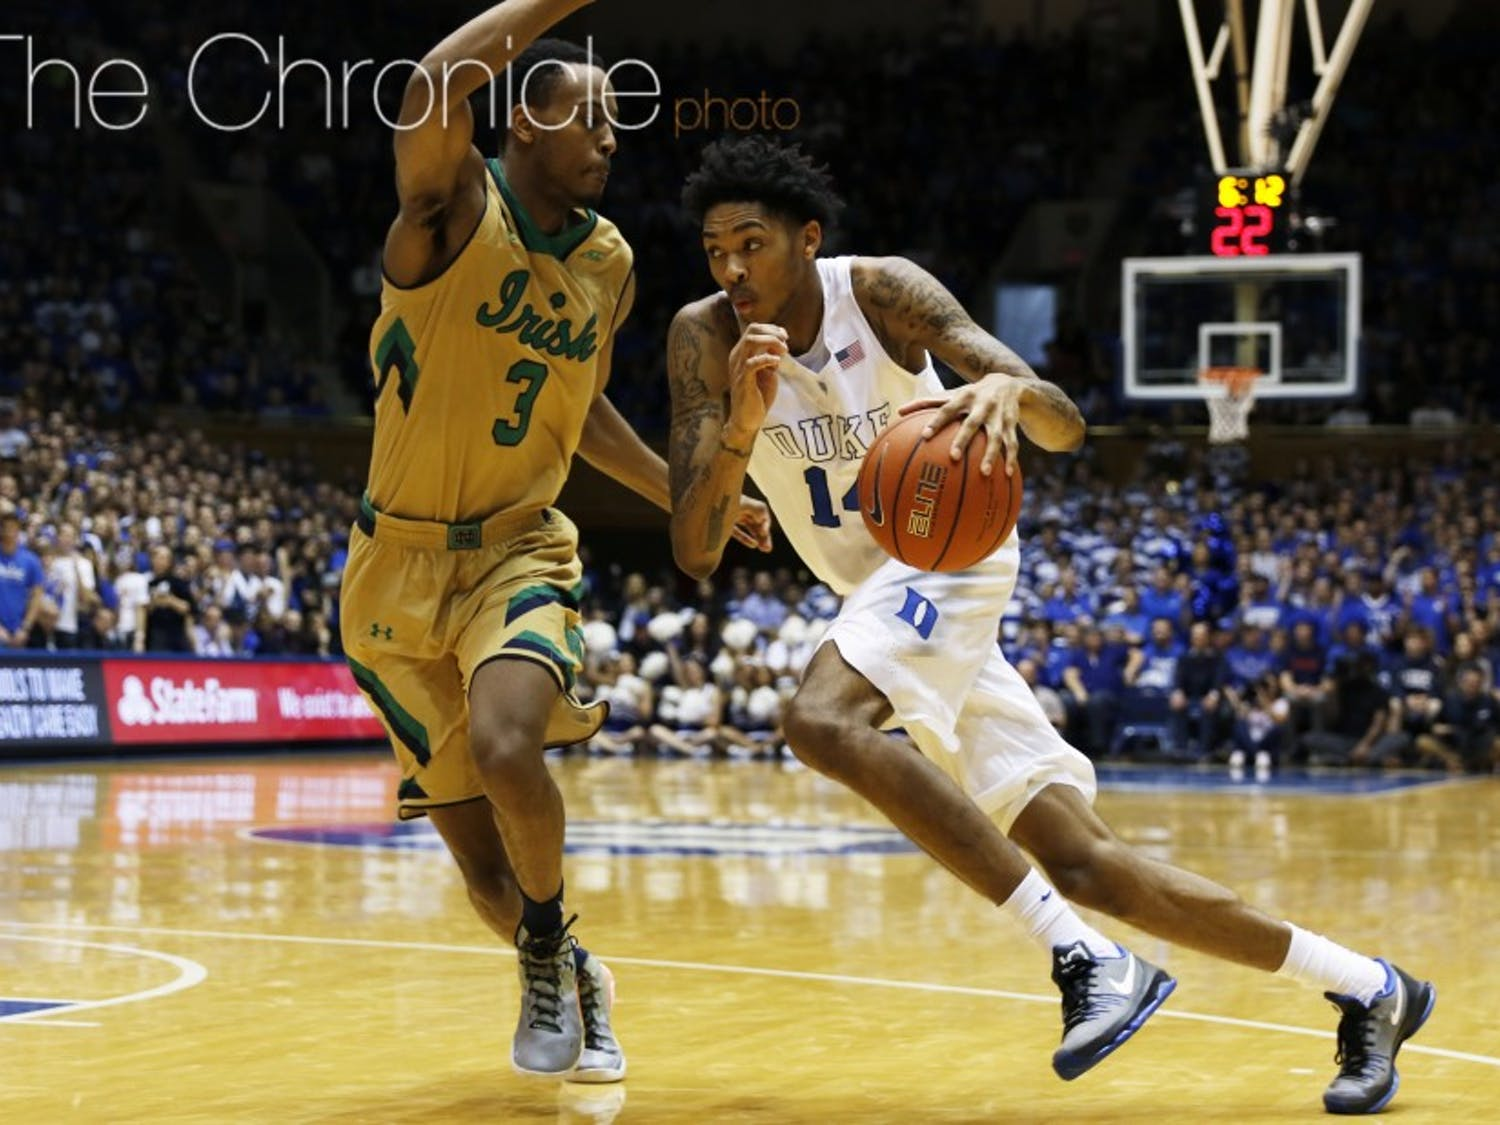 Ingram has been serving as a stretch four for Duke since Amile Jefferson's injury, and poses a matchup problem for opposing defenses due to his combination of shooting prowess and driving ability.